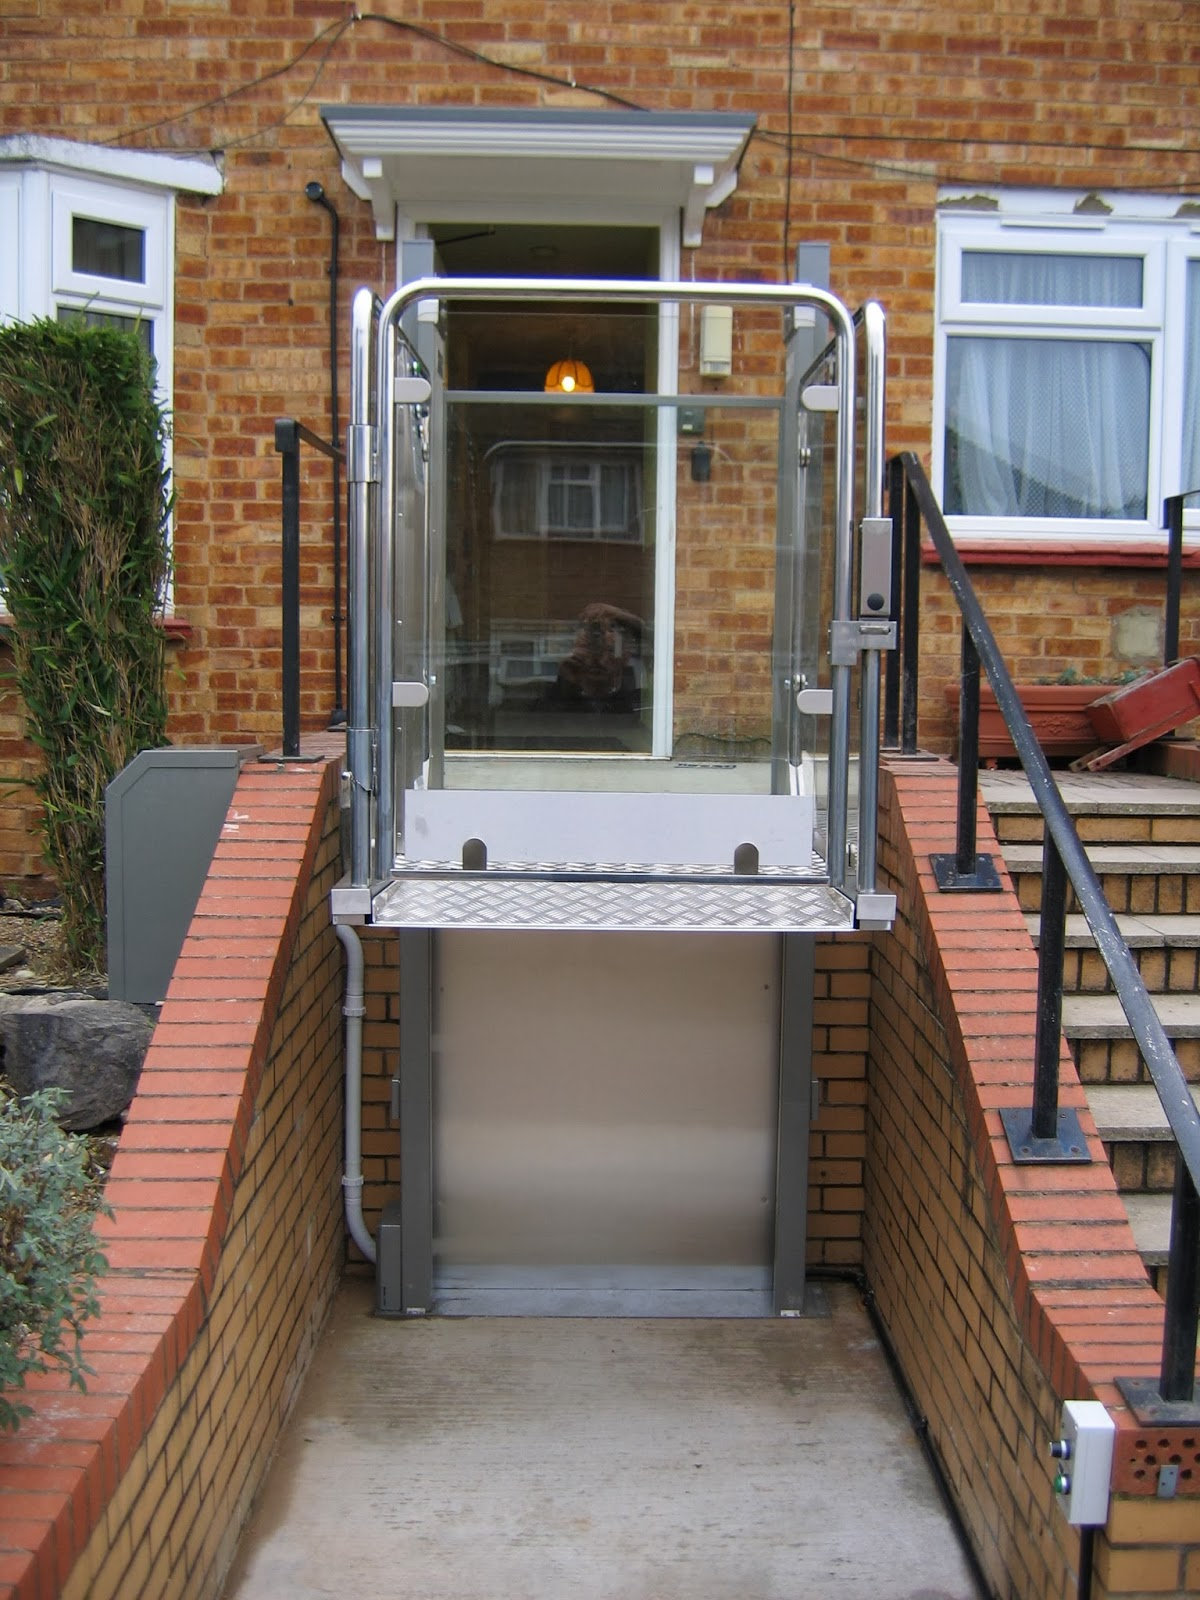 Wheel Chair Lifts Mobility Products For Disabled People Domestic Step Lifts